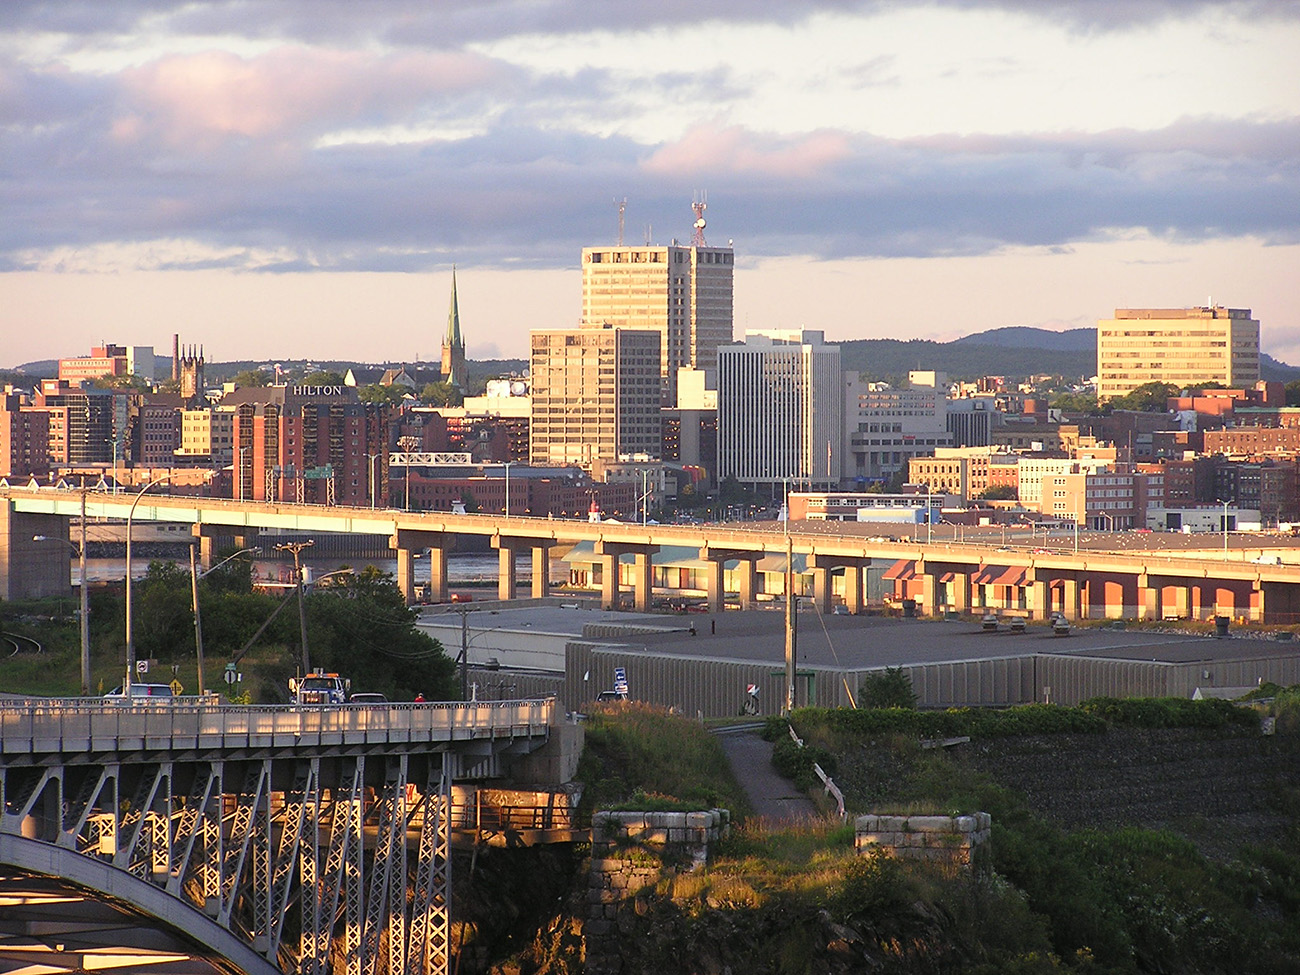 Saint_John__NB__skyline_at_dusk6.jpg